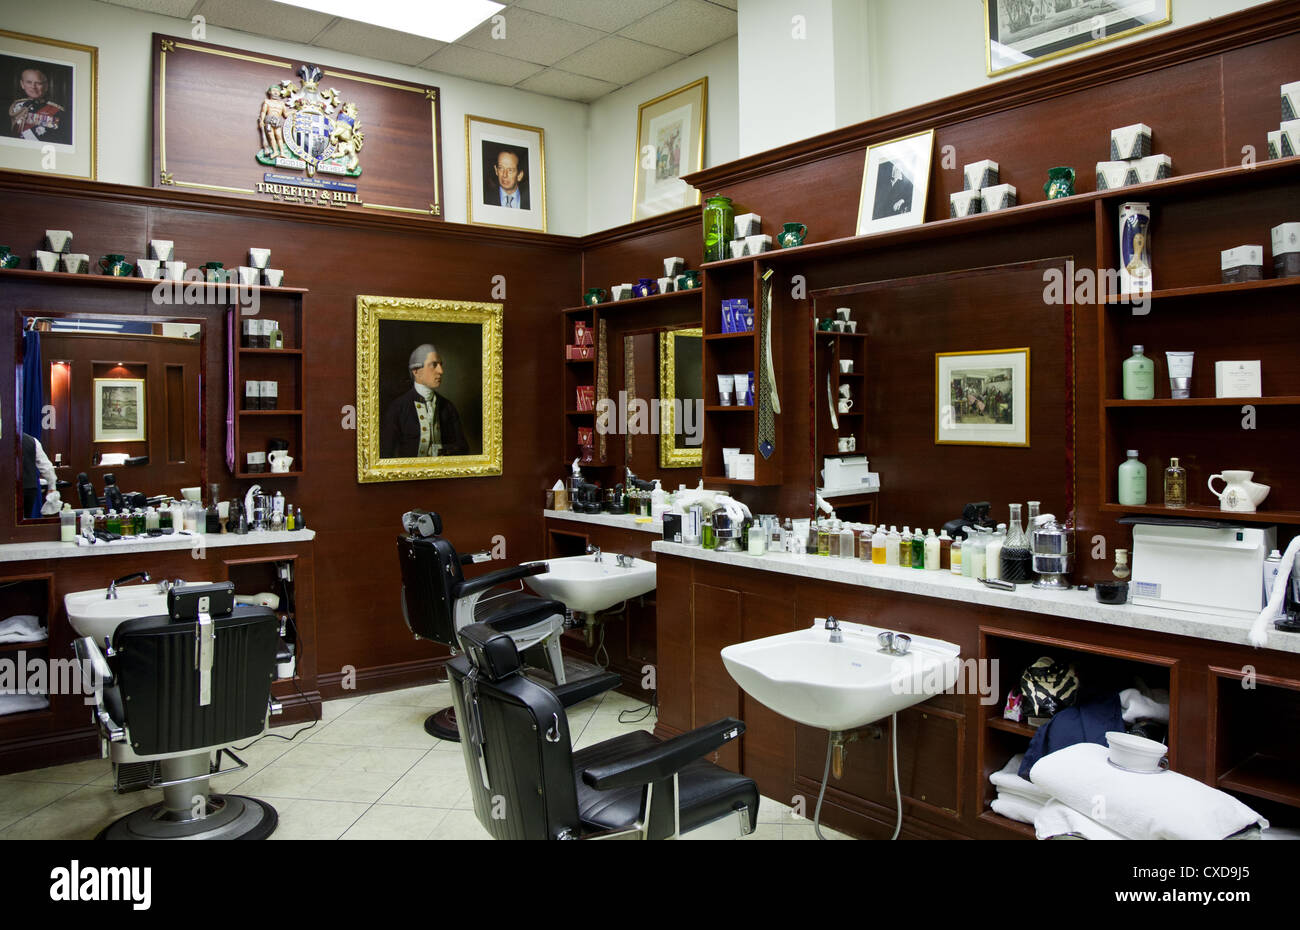 UK, London, the James Bond's places, the barber shop Truefitt & Hill in St James street - Stock Image